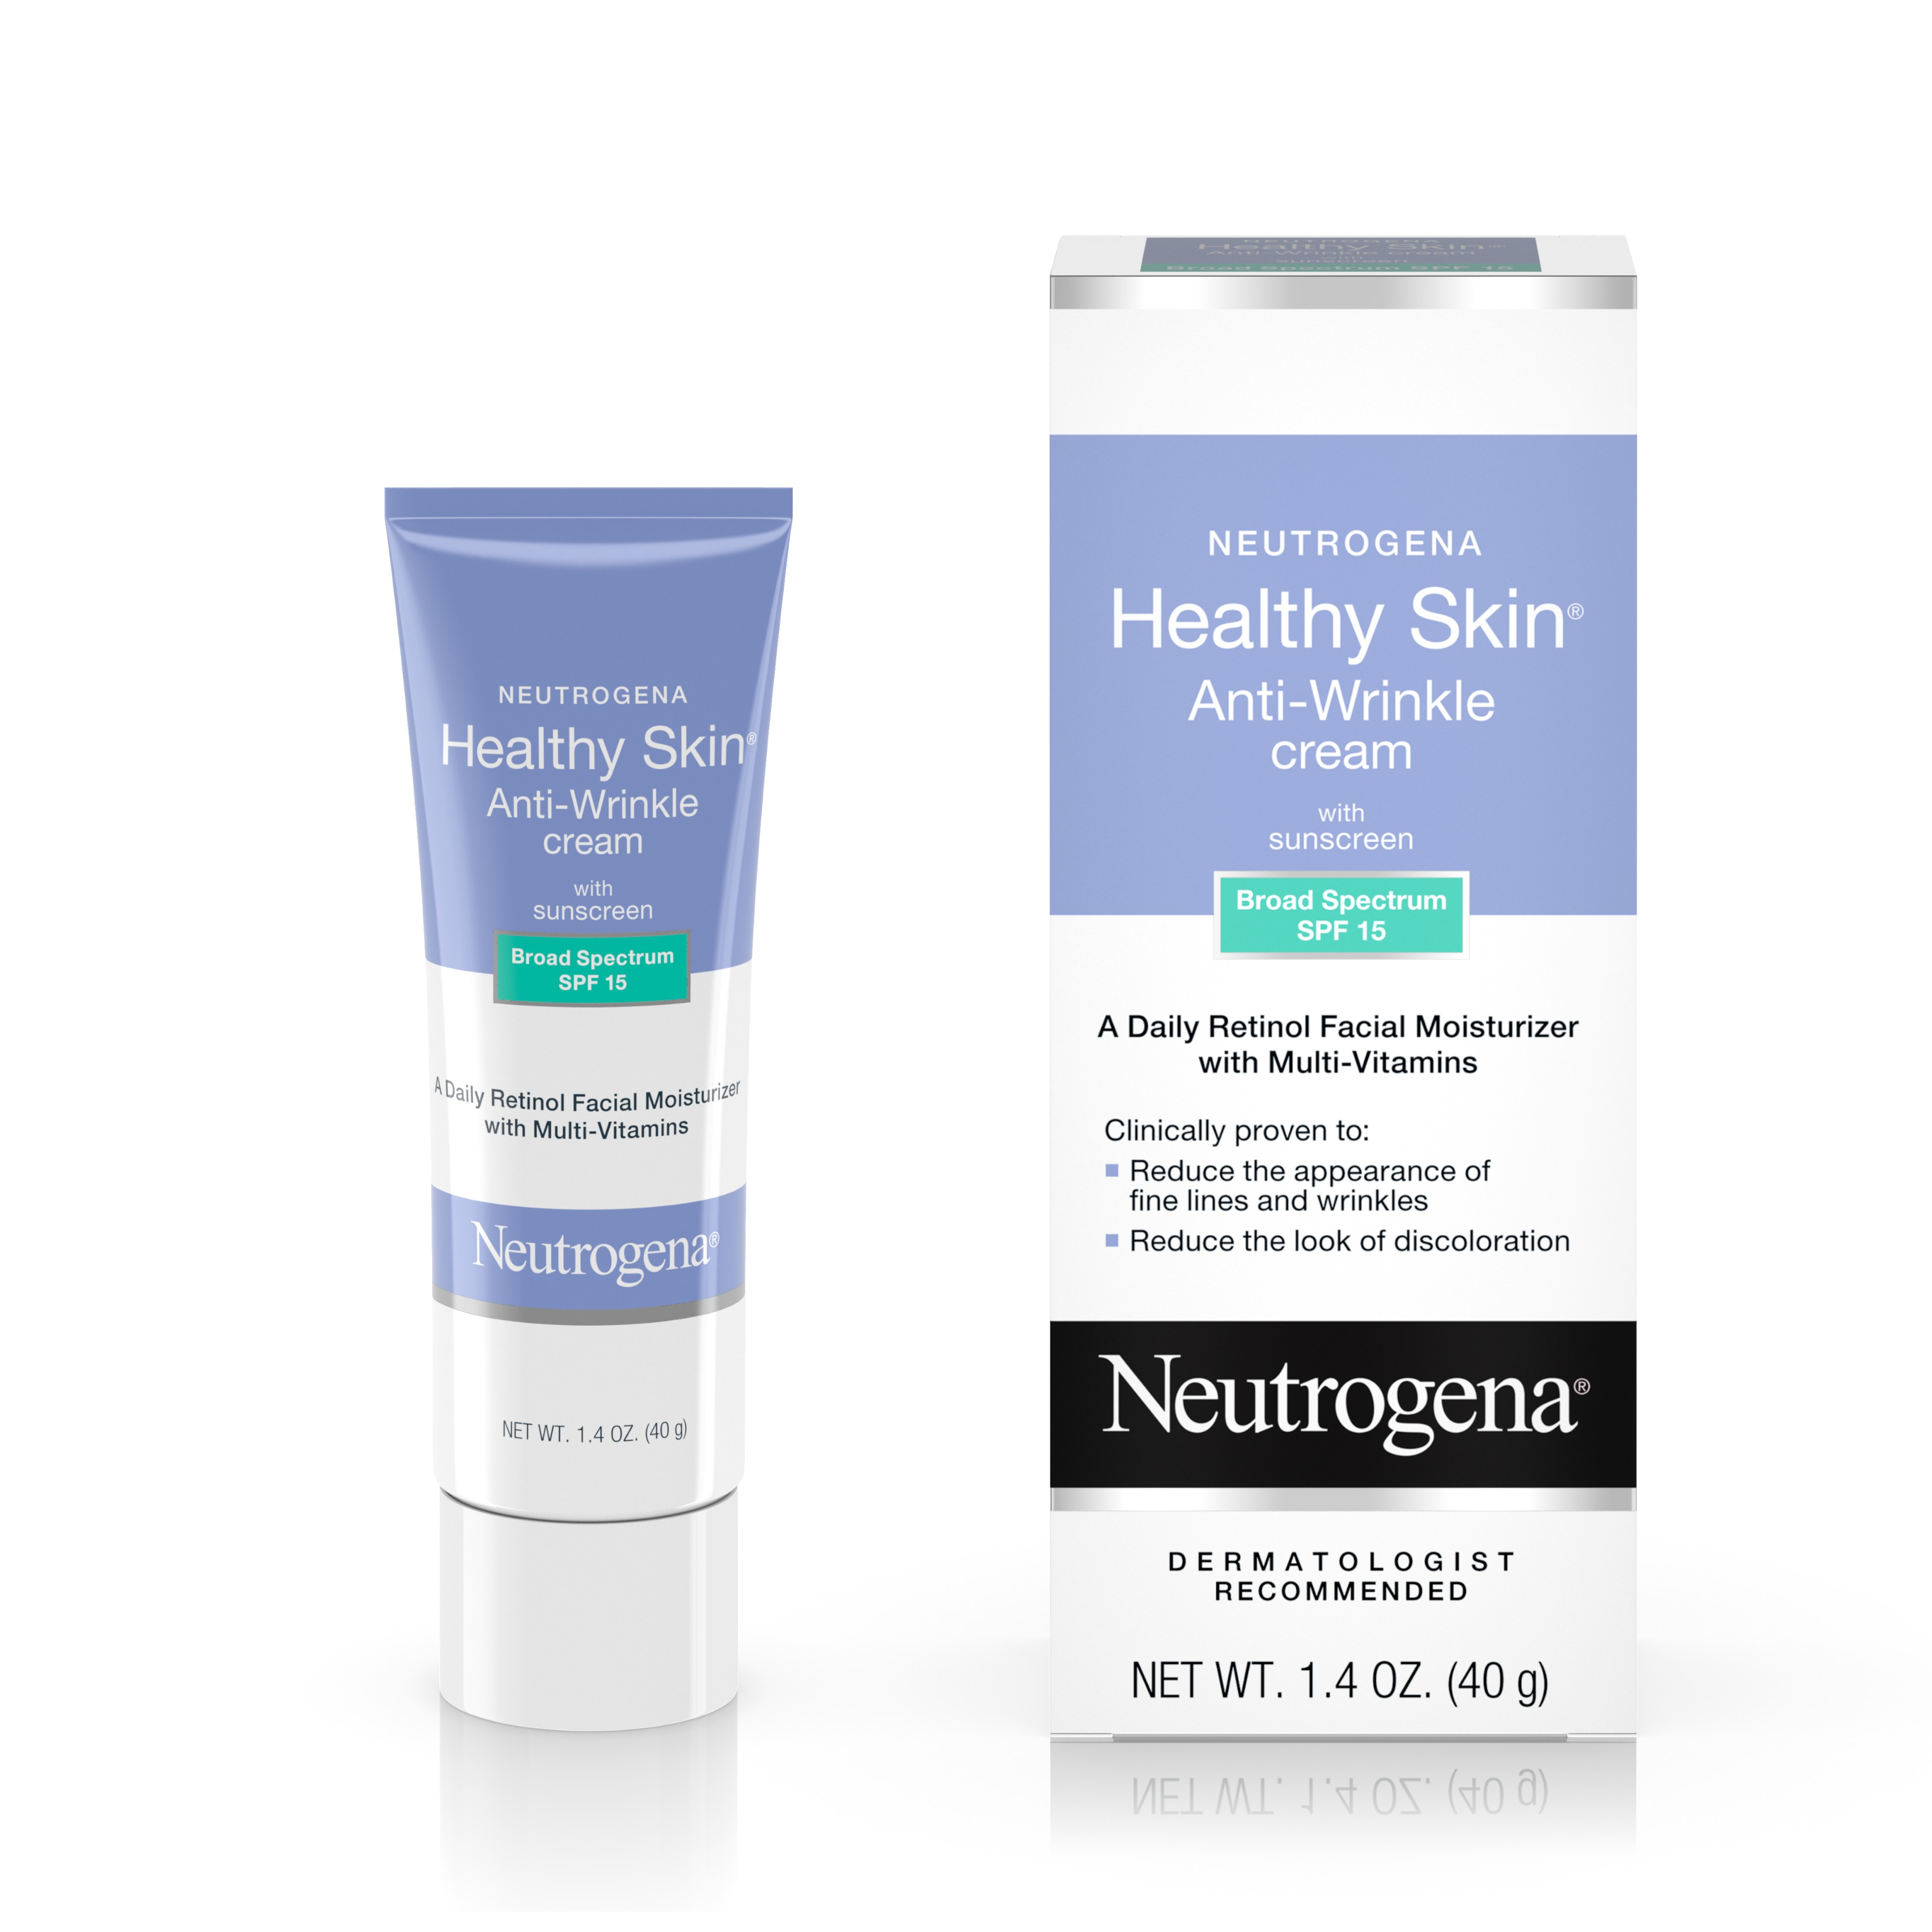 Neutrogena Healthy Skin Anti-Wrinkle Cream, Retinol & SPF 15, 1.4 oz